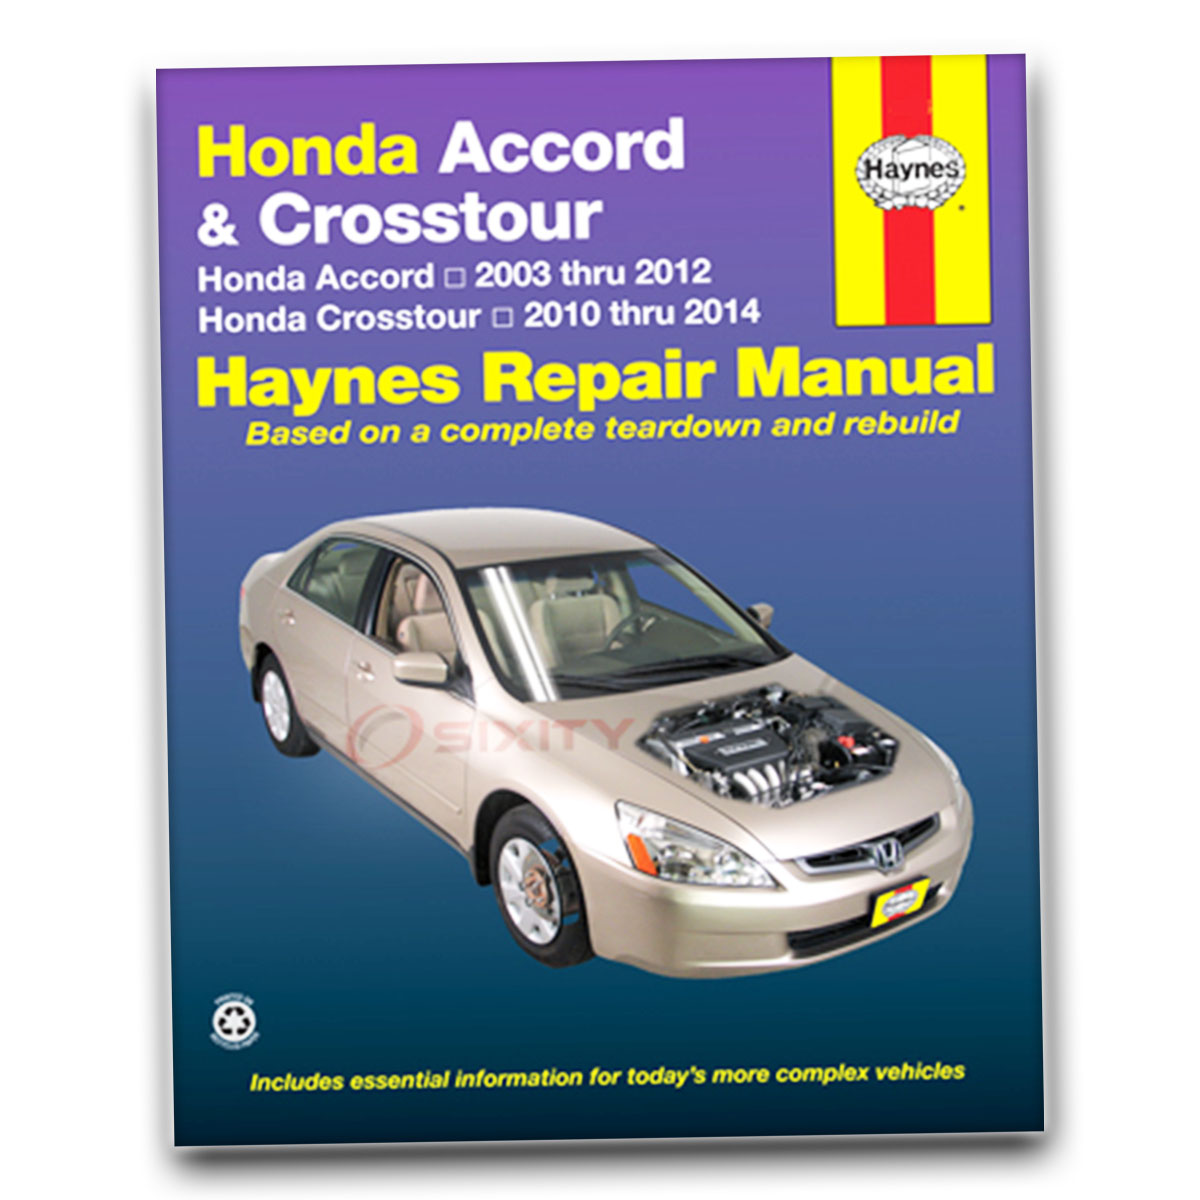 Haynes Repair Manual for Honda Accord EX-L Value Package SE Special Edition  he